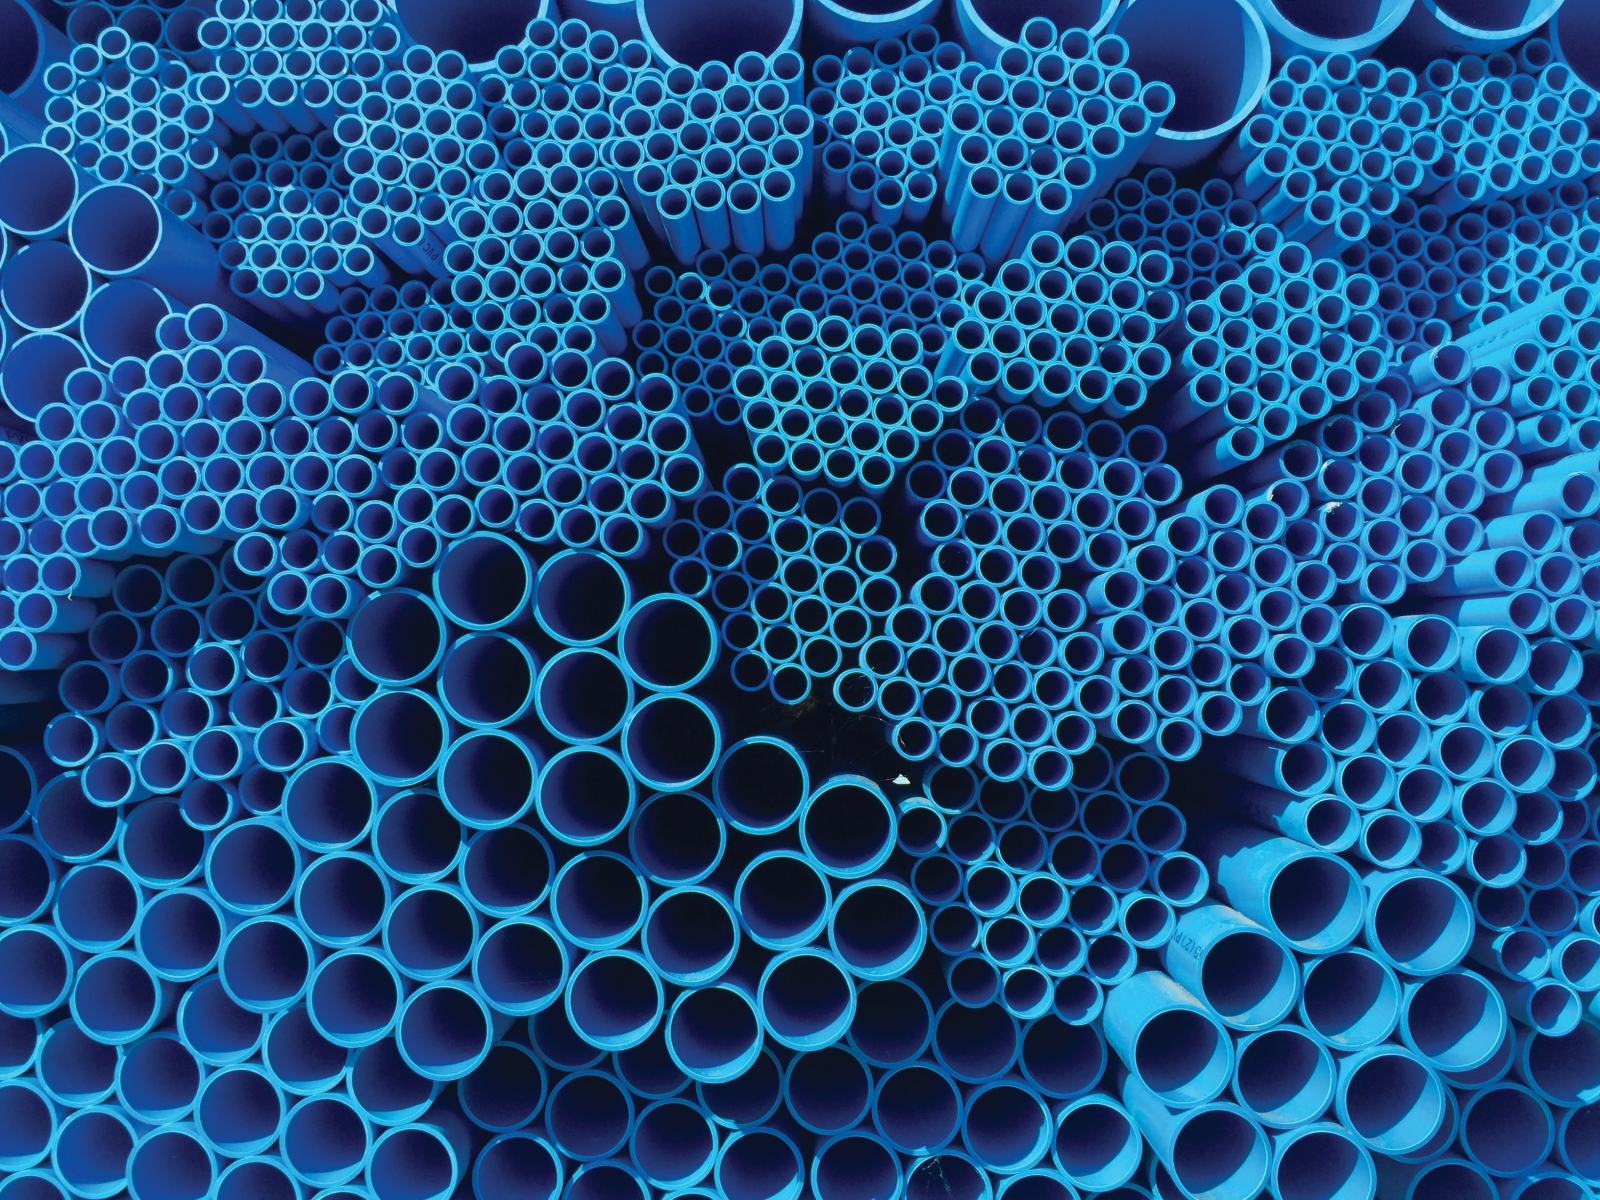 Figure 2: Sections of Mixed Size Blue PVC Pipes (Photo by Narongchai Sriarunniran, via Shutterstock.)